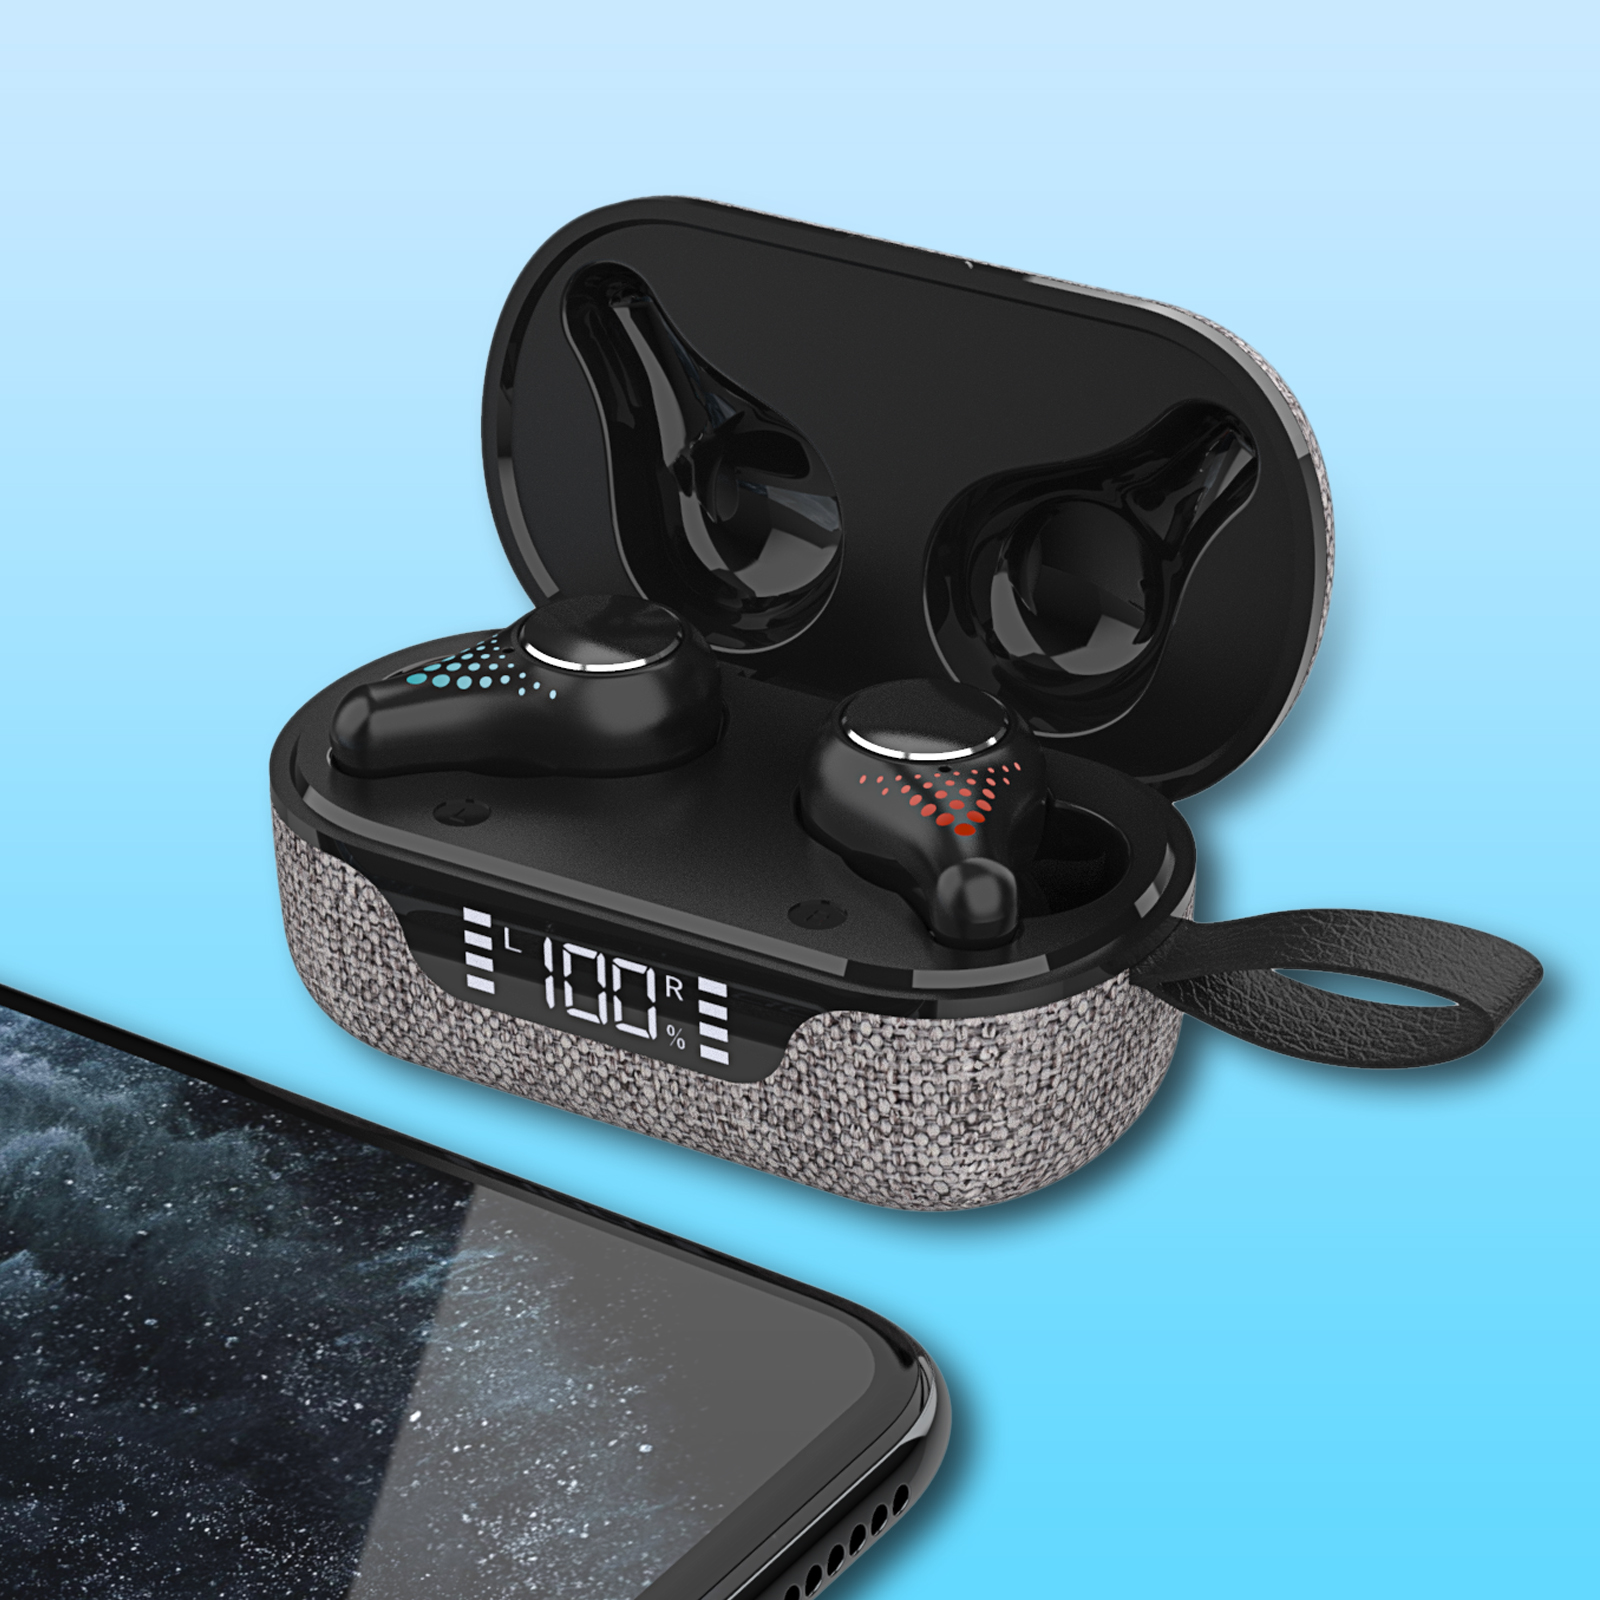 Samload <font><b>TWS</b></font> Wireless <font><b>Earbuds</b></font> IPX7 Waterproof Noise reduction Bluetooth Earphones Deep Bass In-Ear Headphones Built-in Mic Calls image